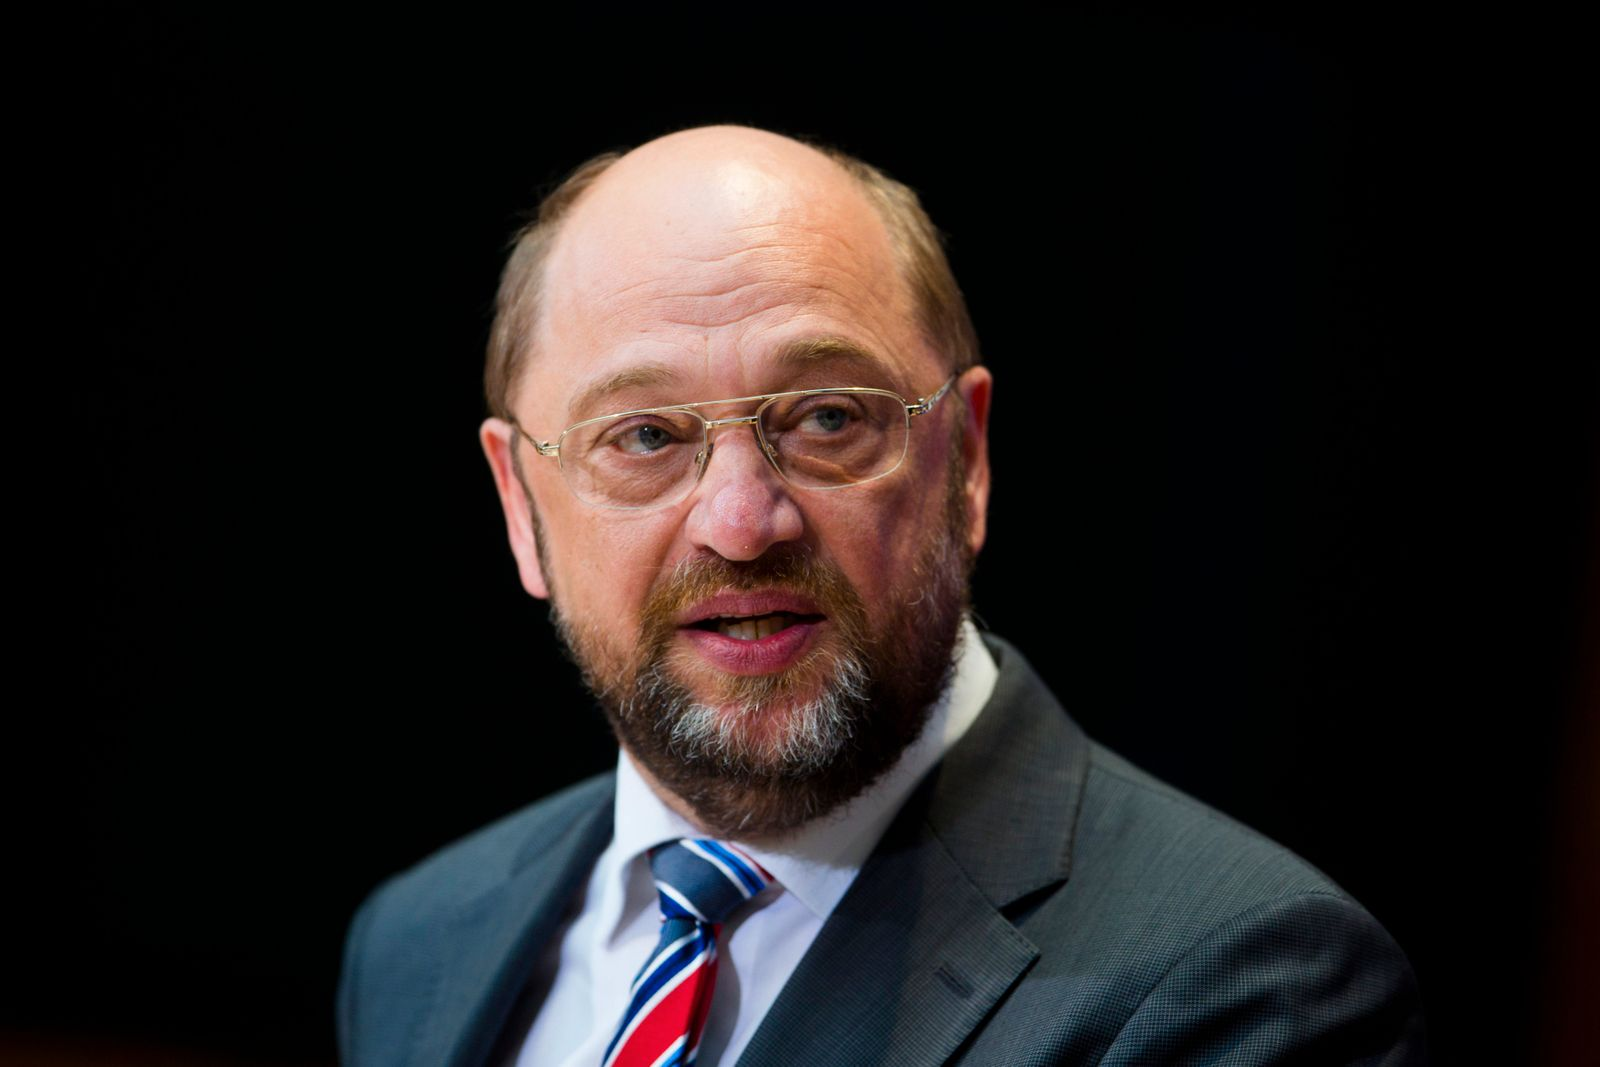 Martin Schulz, candidate for European Commission president of Germany's Social Democratic Party (SPD), attends a press briefing after European Parliament election in Berlin